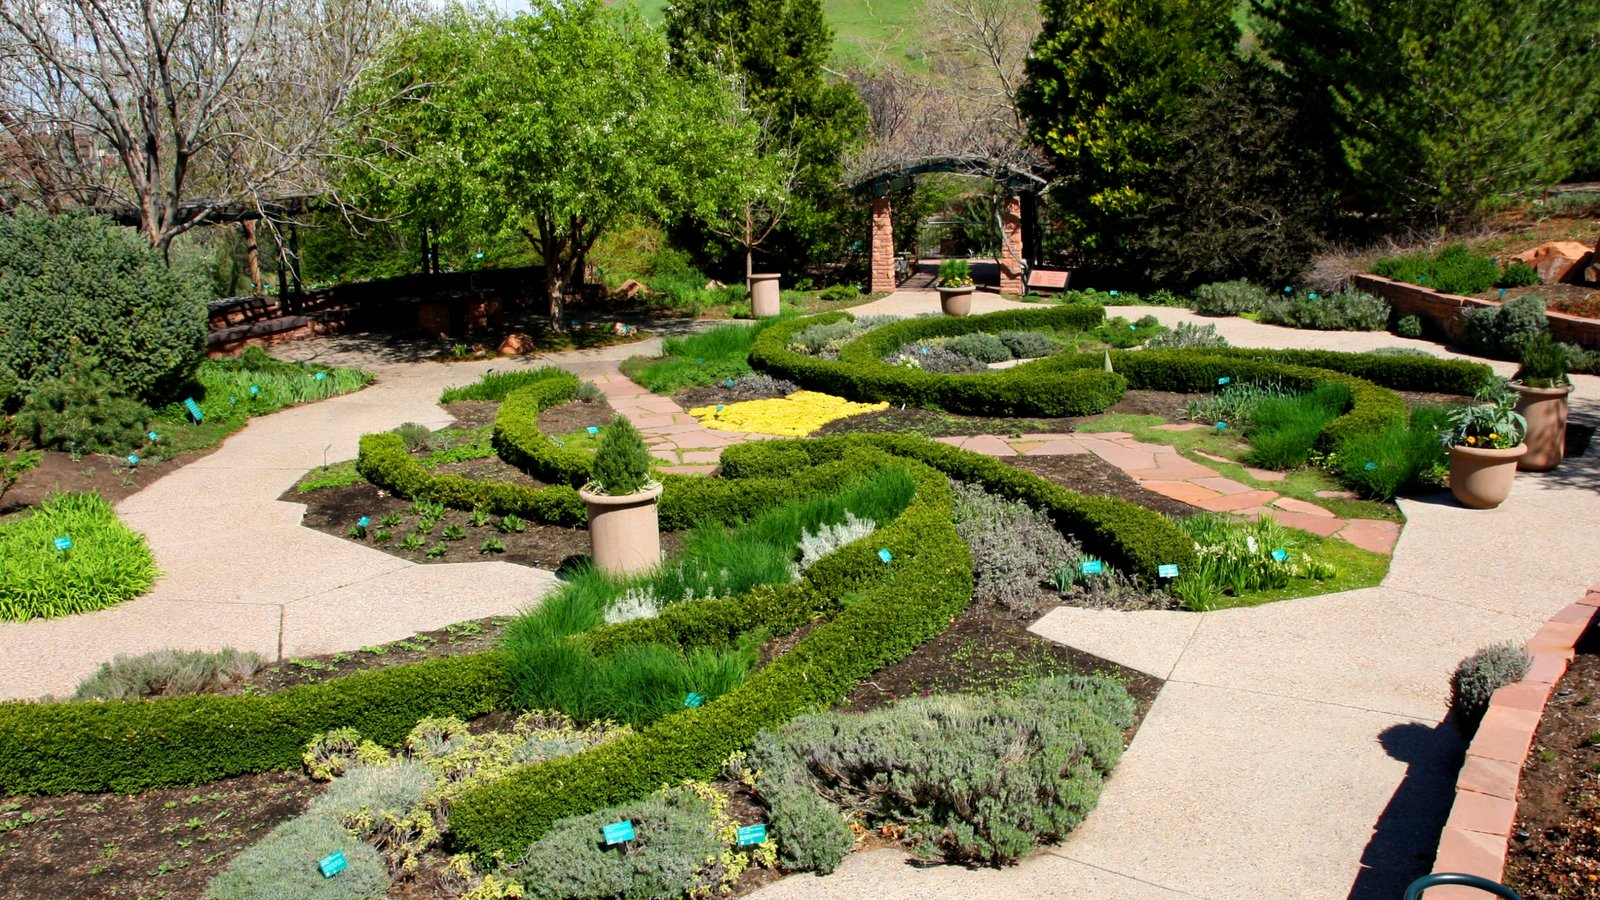 Red Butte Garden and Arboreteum which includes a garden